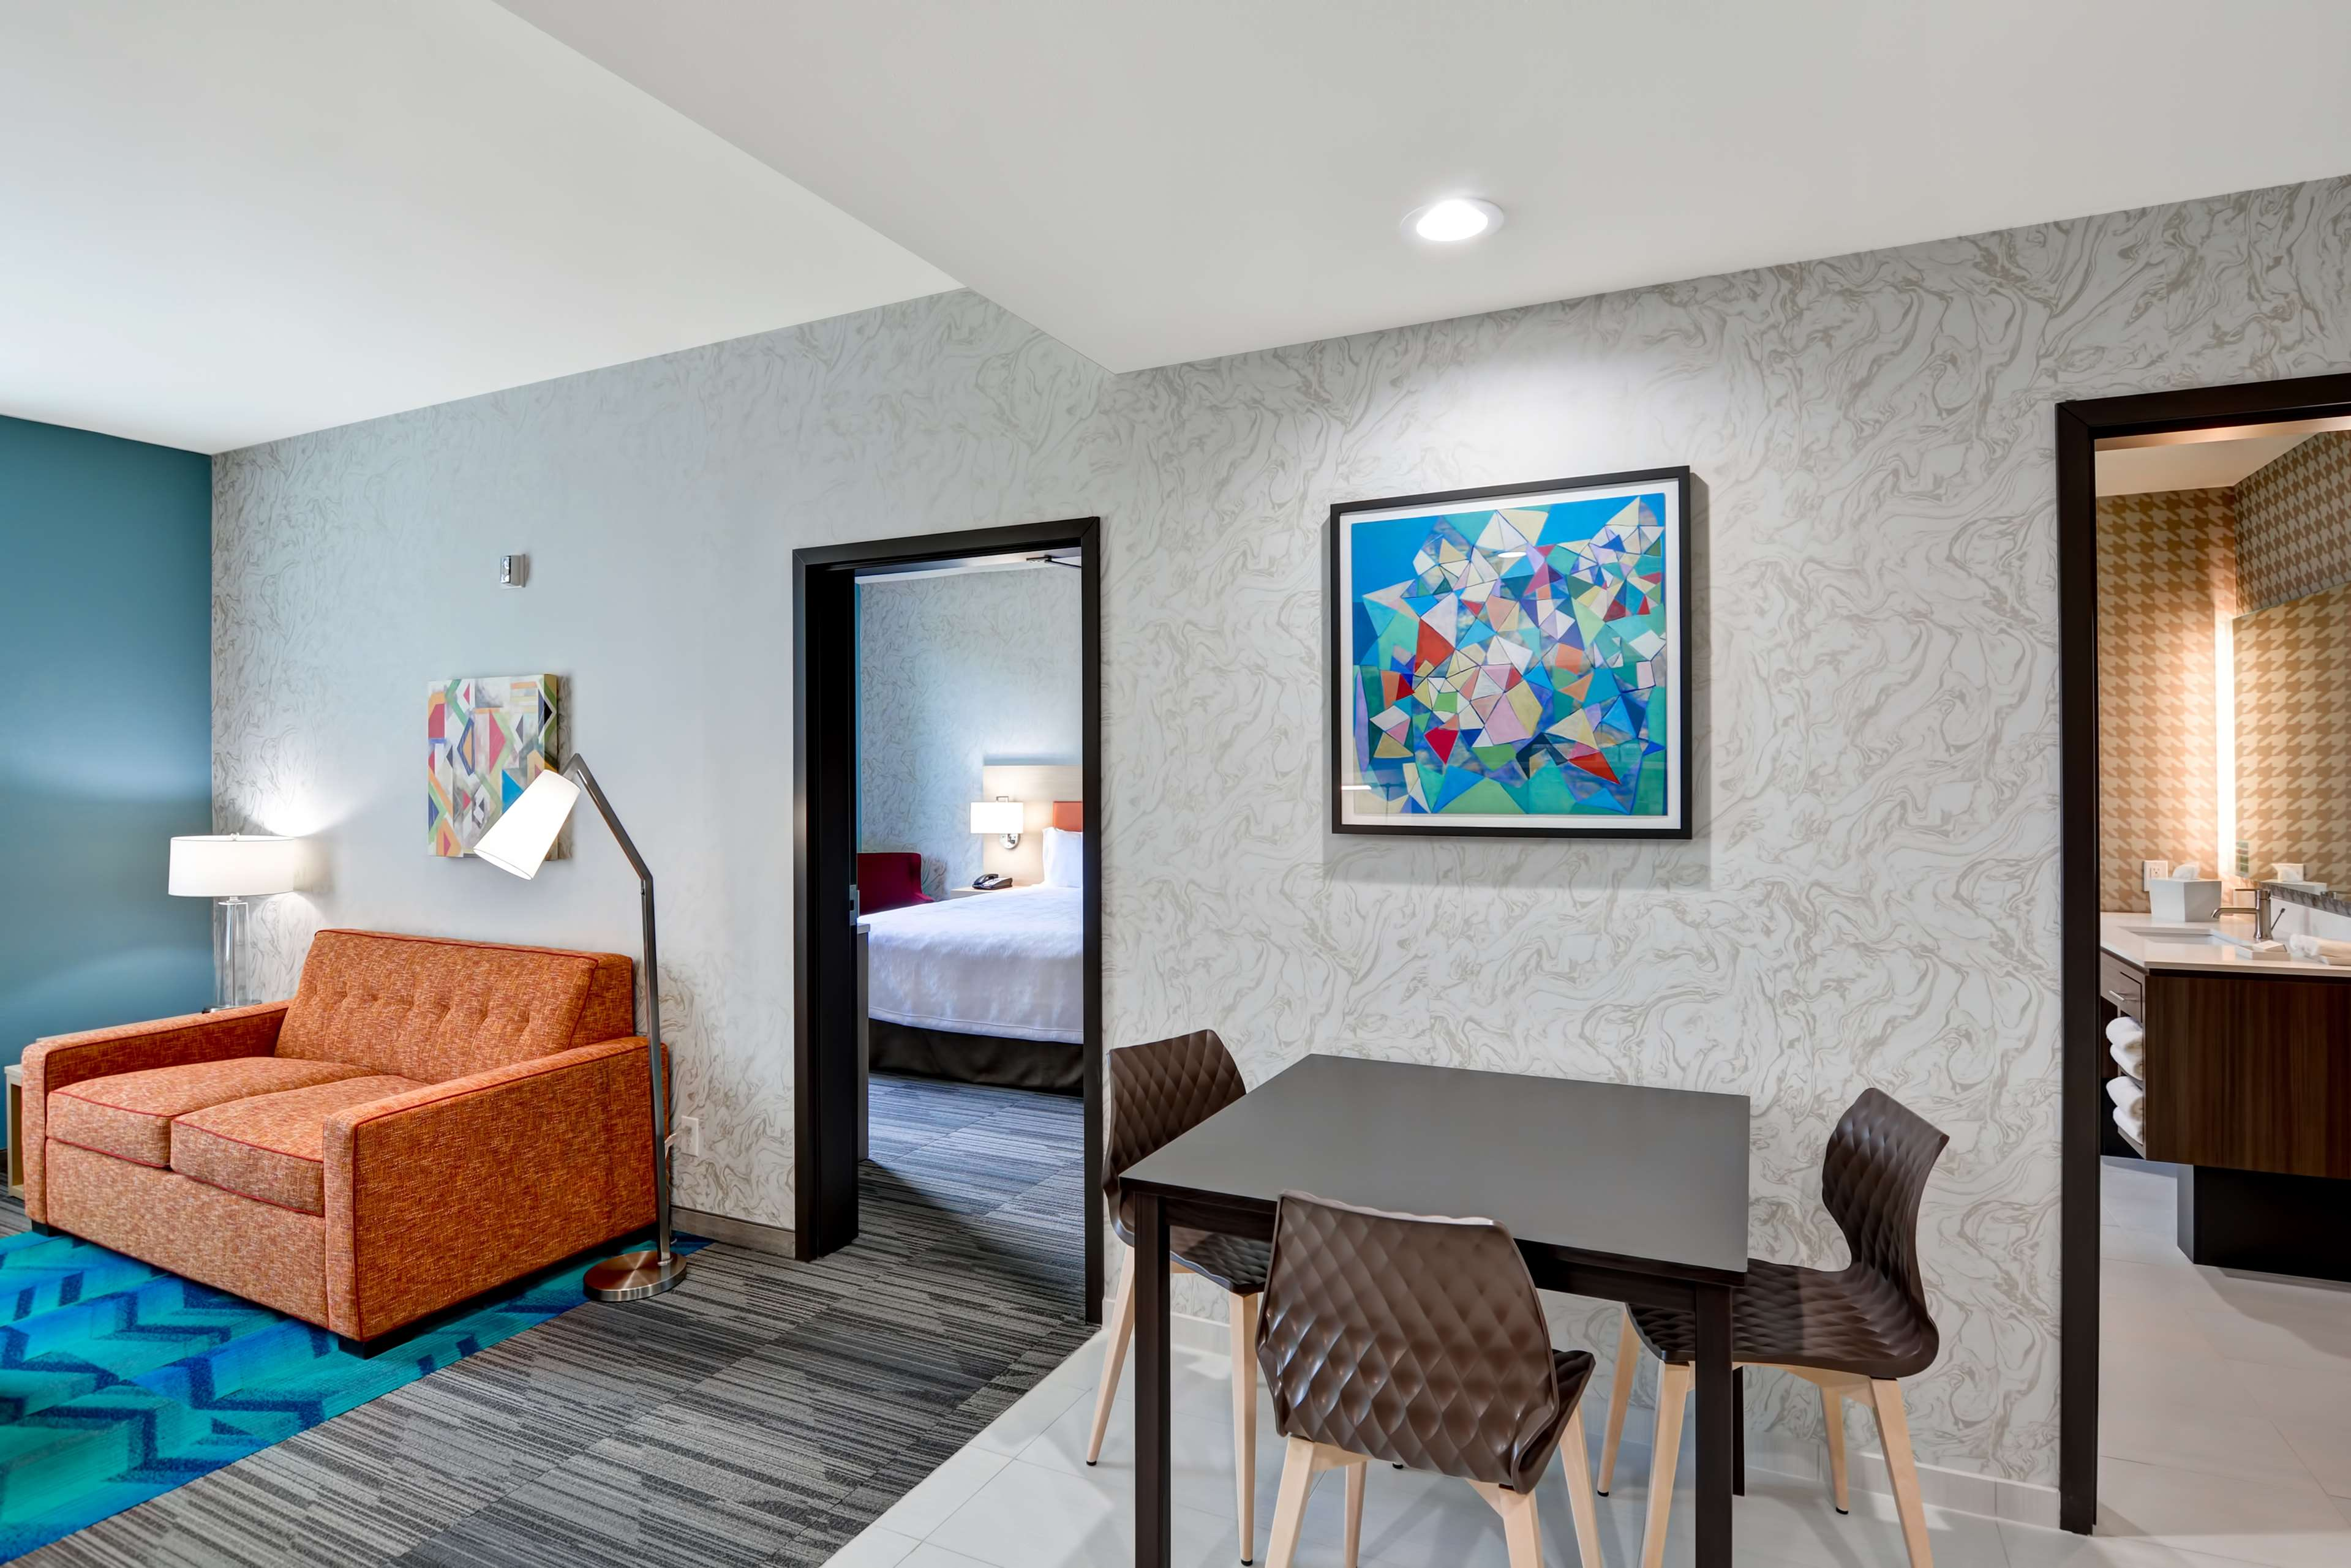 Home2 Suites by Hilton OKC Midwest City Tinker AFB image 29